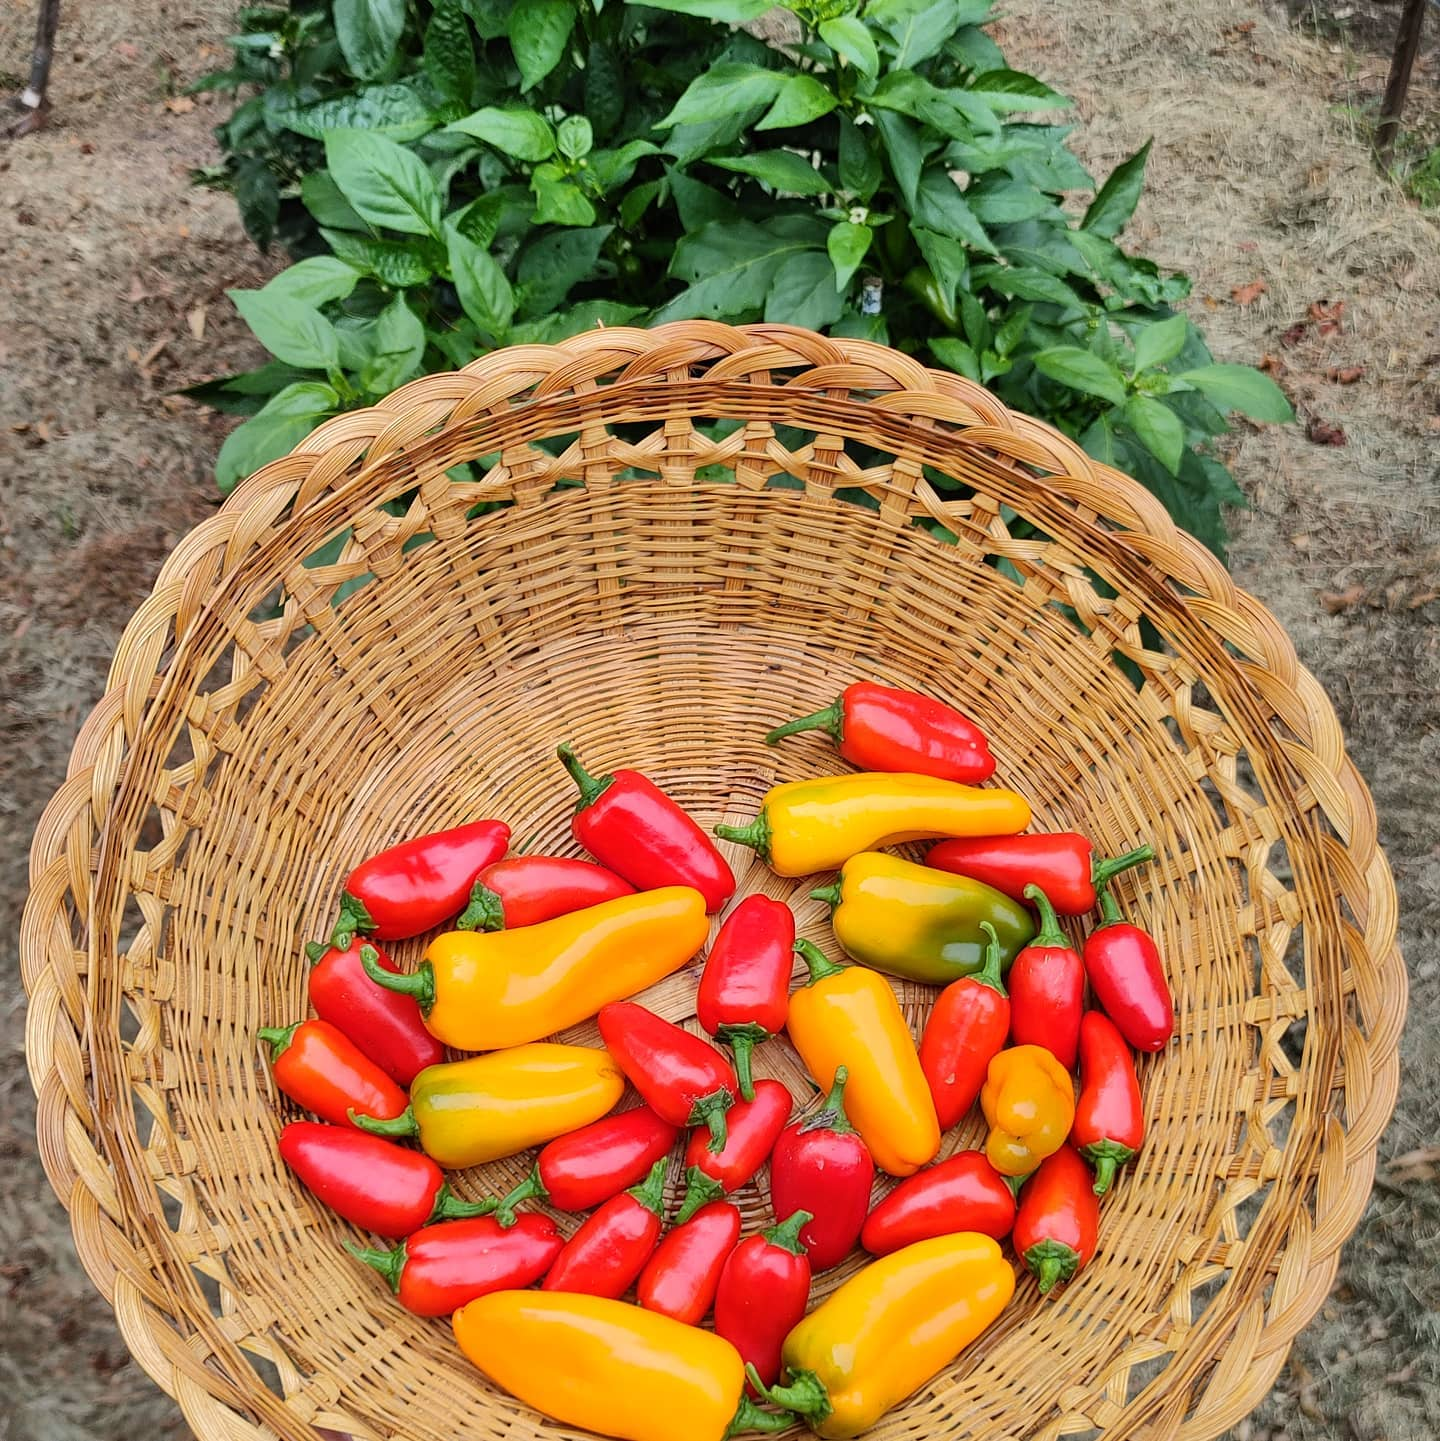 Lunchbox peppers are my favorite for snacking. Very sweet, very few seeds and patient! I had yellow last year but found red and orange this year. Feels like $5 per pint? I just eat them but I like to feel like it is a good value.